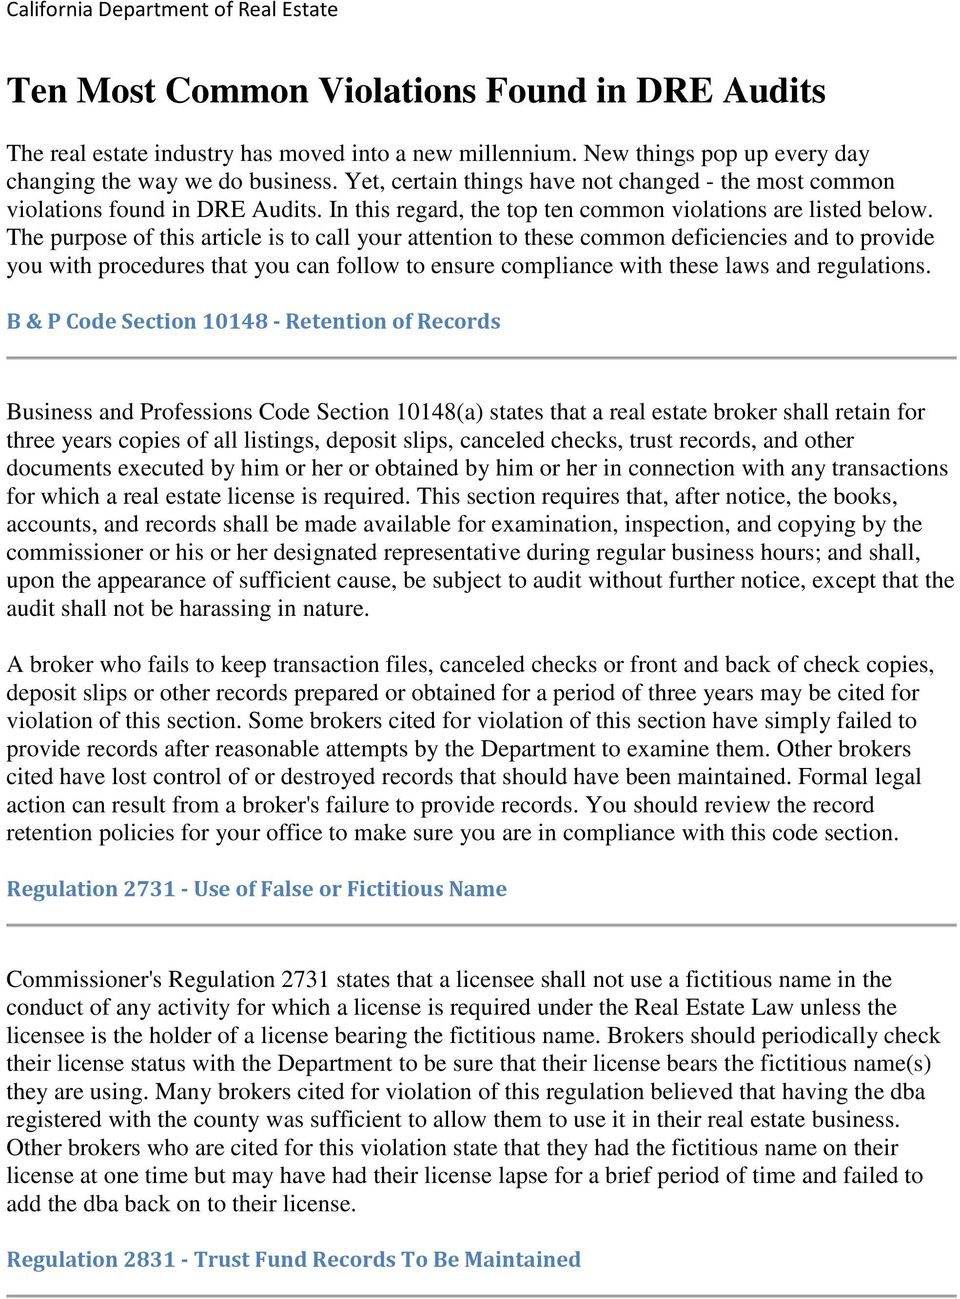 The purpose of this article is to call your attention to these common deficiencies and to provide you with procedures that you can follow to ensure compliance with these laws and regulations.